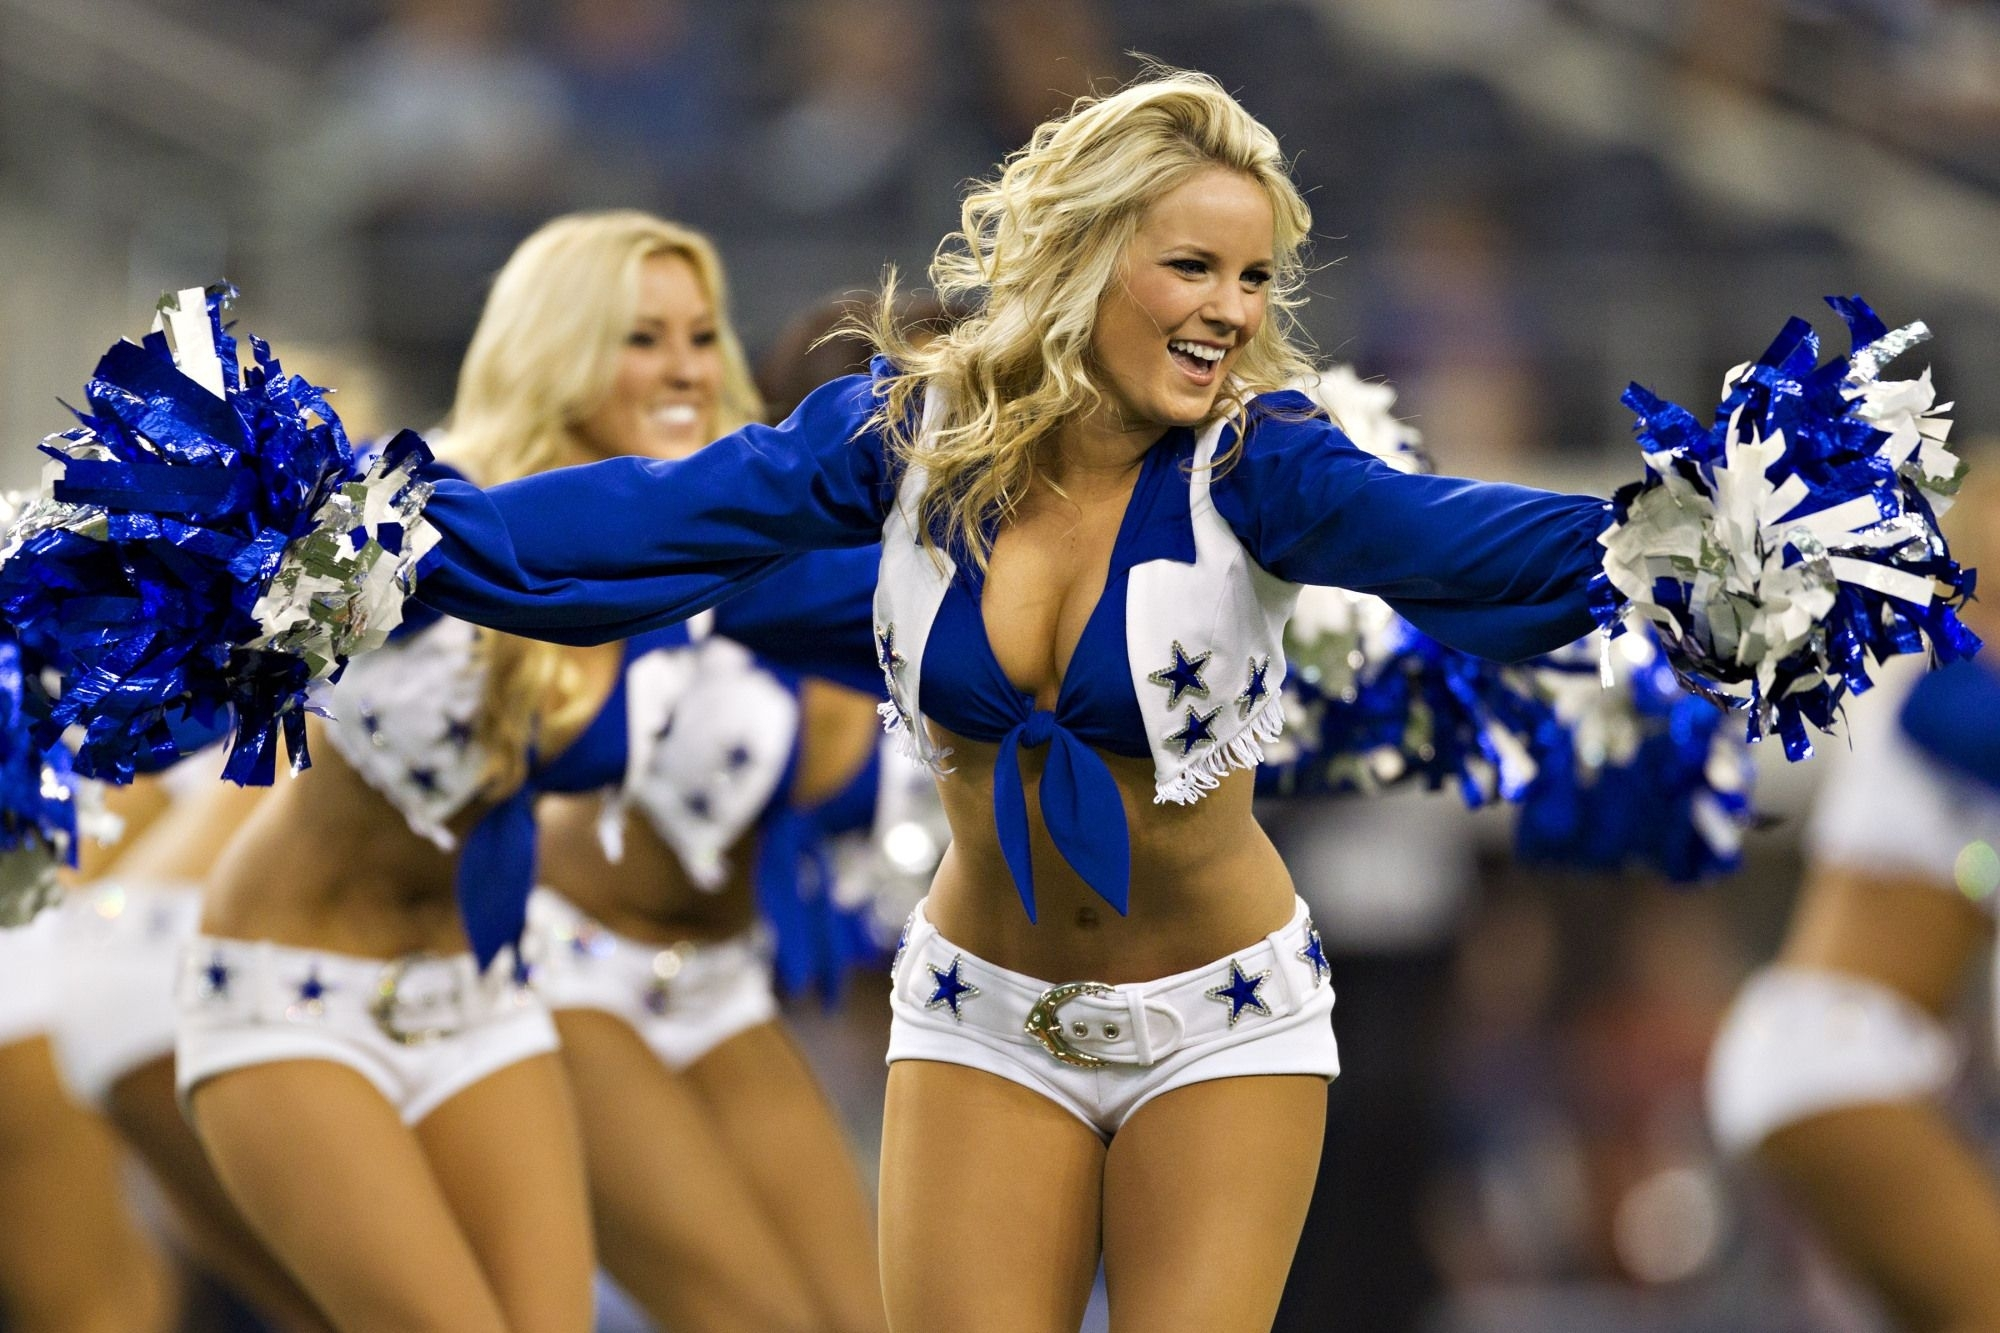 cheerleader nfl football dallas cowboys f wallpaper | 2000x1333